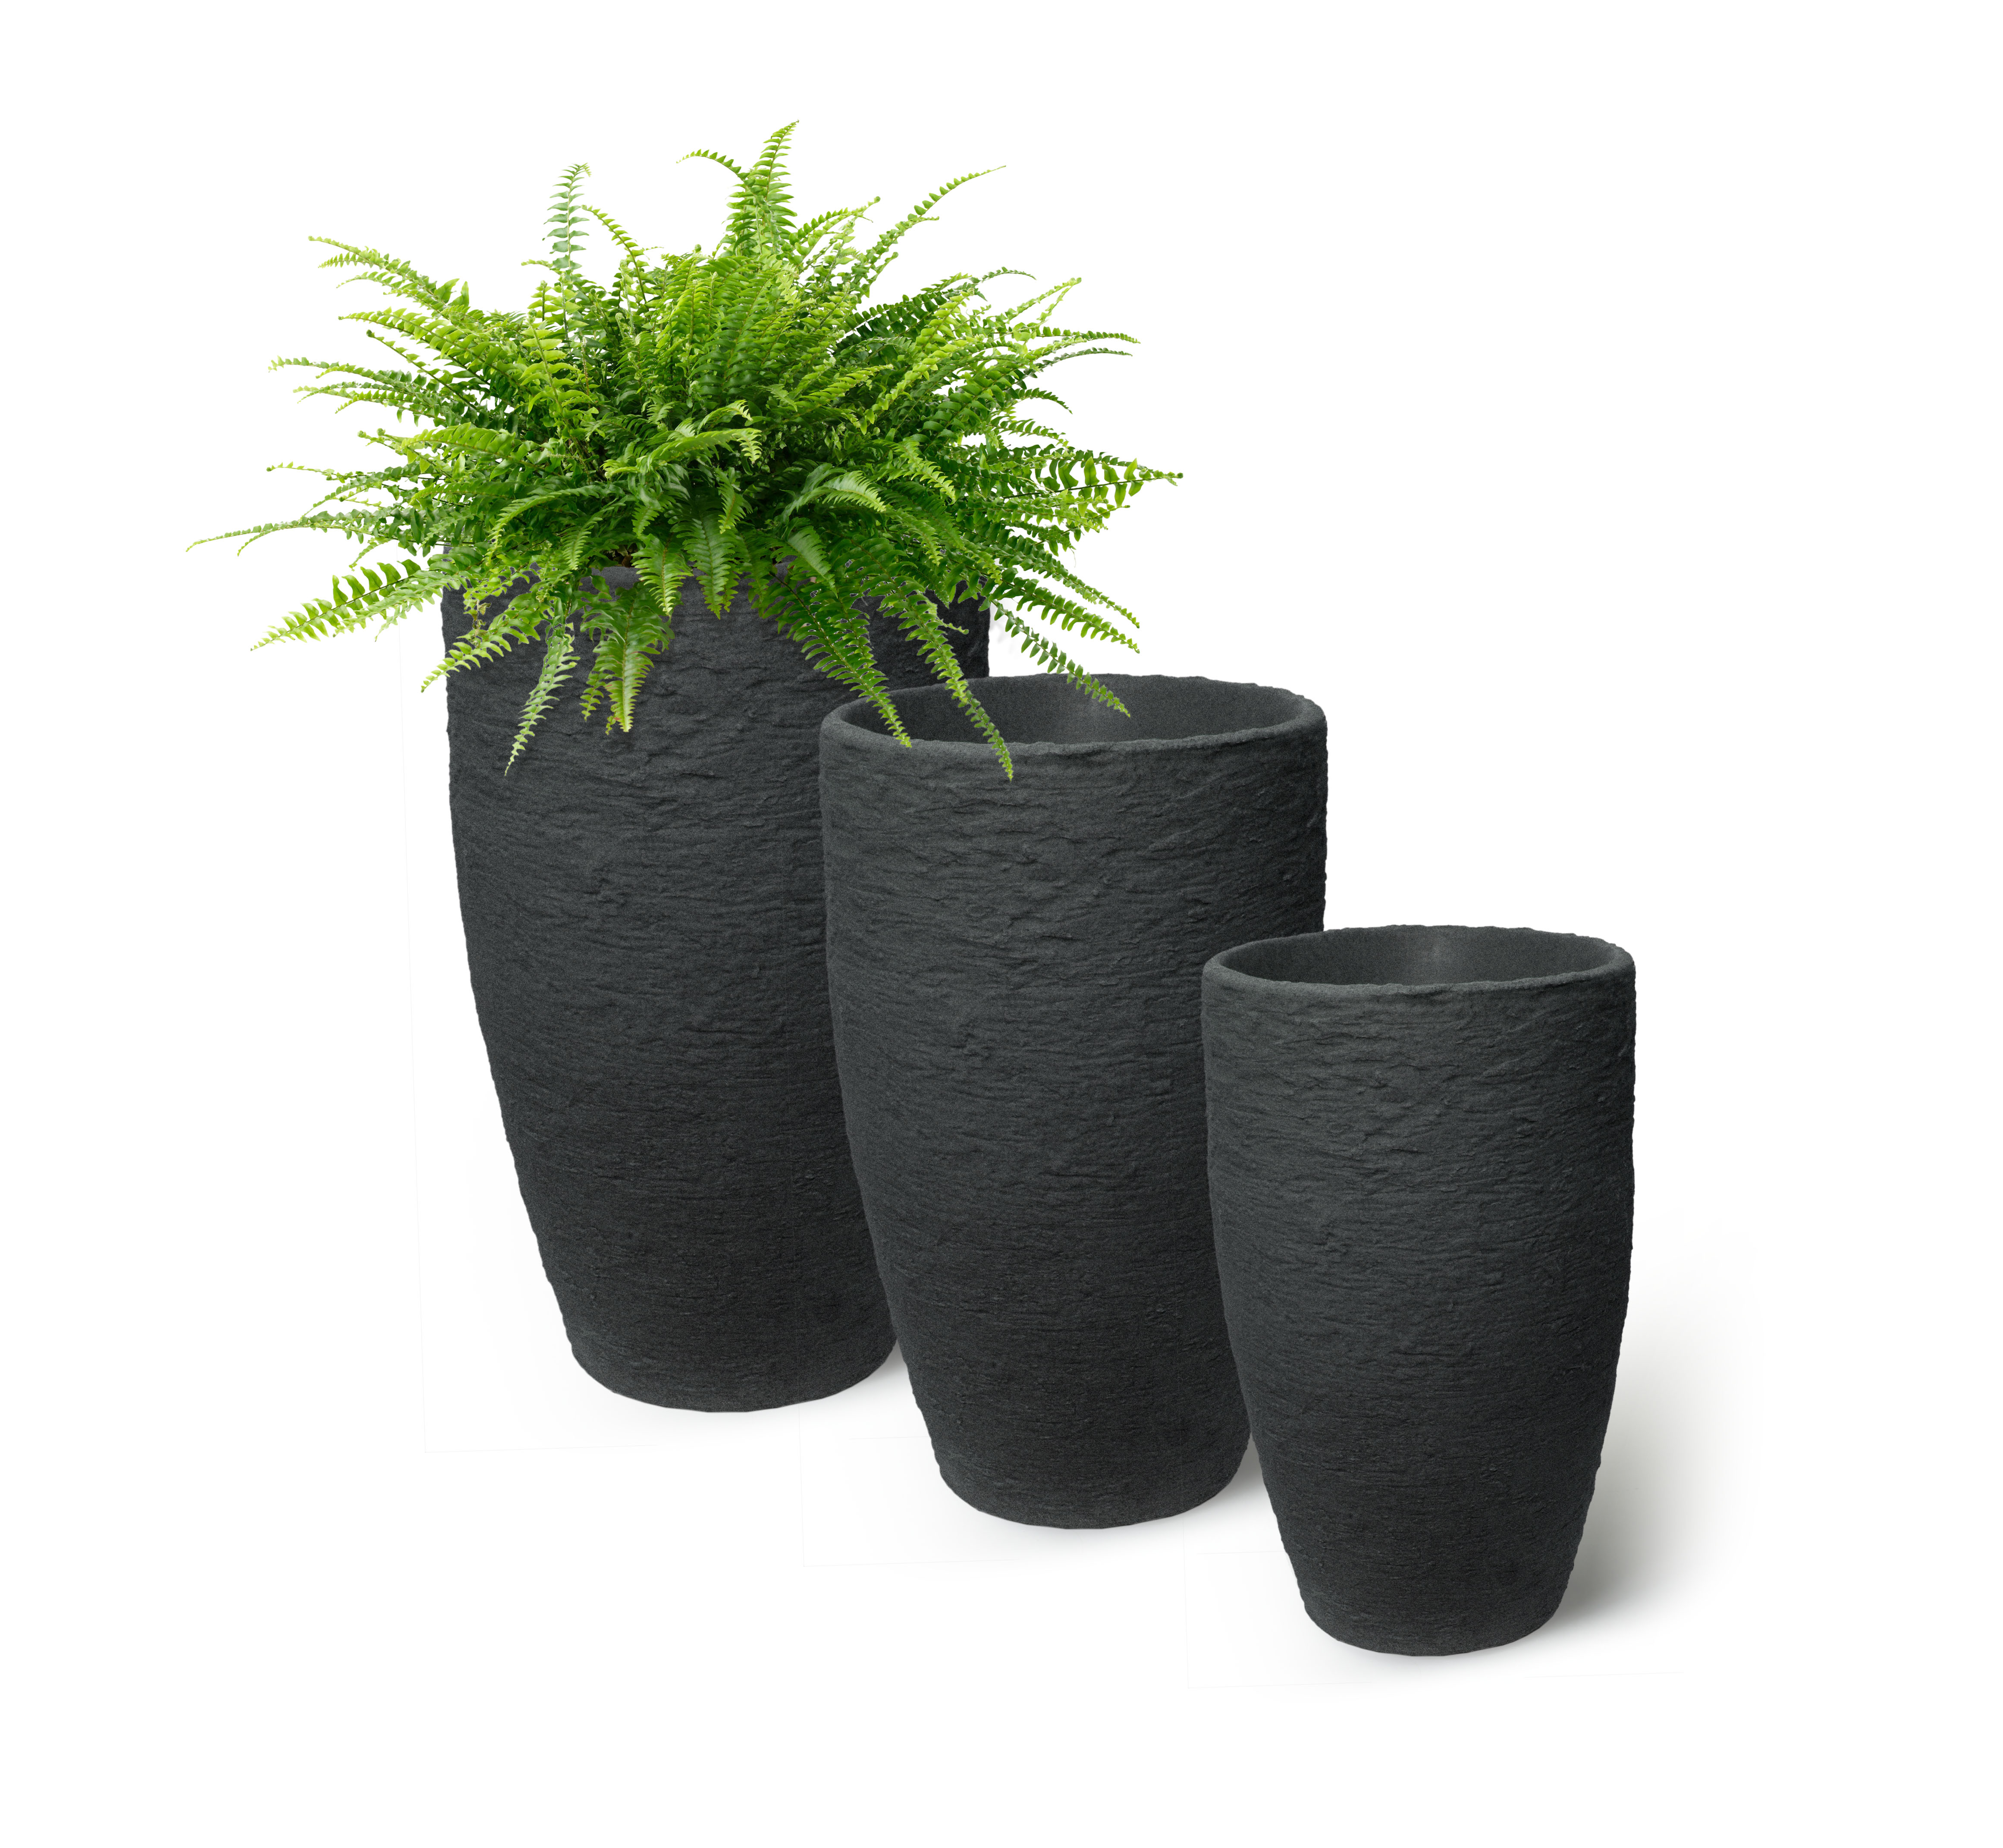 Algreen Athena Planter, 20-Inch Height by 12.6-In., Self-Watering Planter, Brownstone